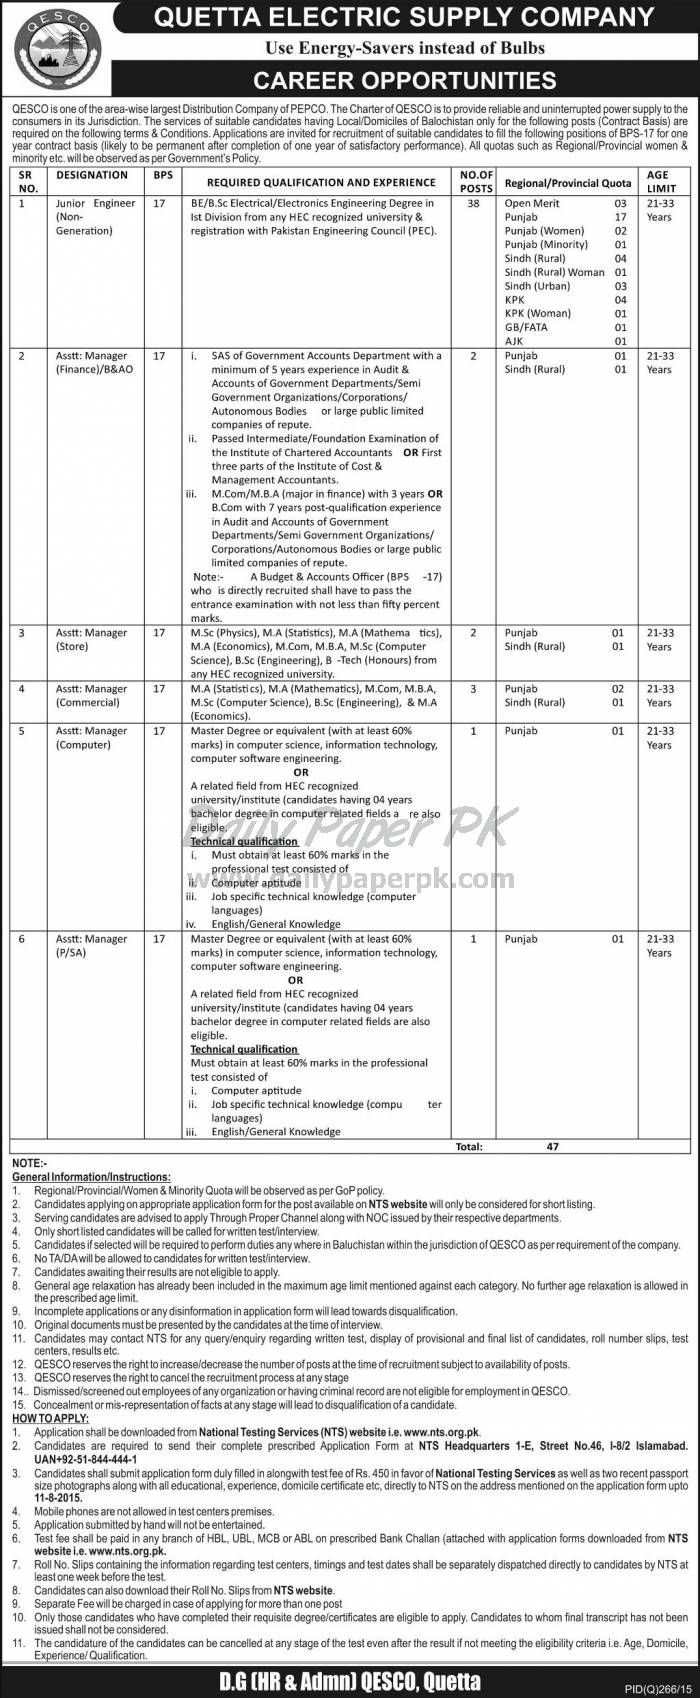 Career Opportunities in Quetta Electric Supply Company QESCO Balochistan For #jobs detail and how to apply: #paperpk http://www.dailypaperpk.com/jobs/238989/career-opportunities-quetta-electric-supply-company-qesco-balochistan